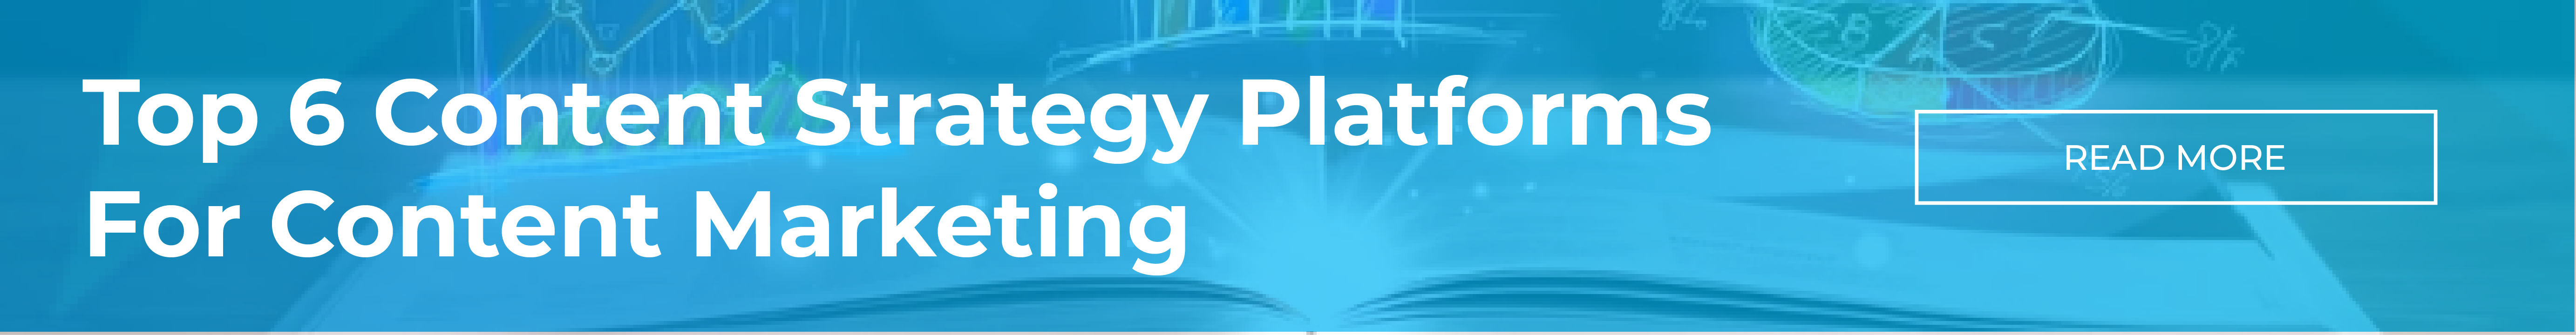 Top 6 Content Strategy Platforms for Content Marketing